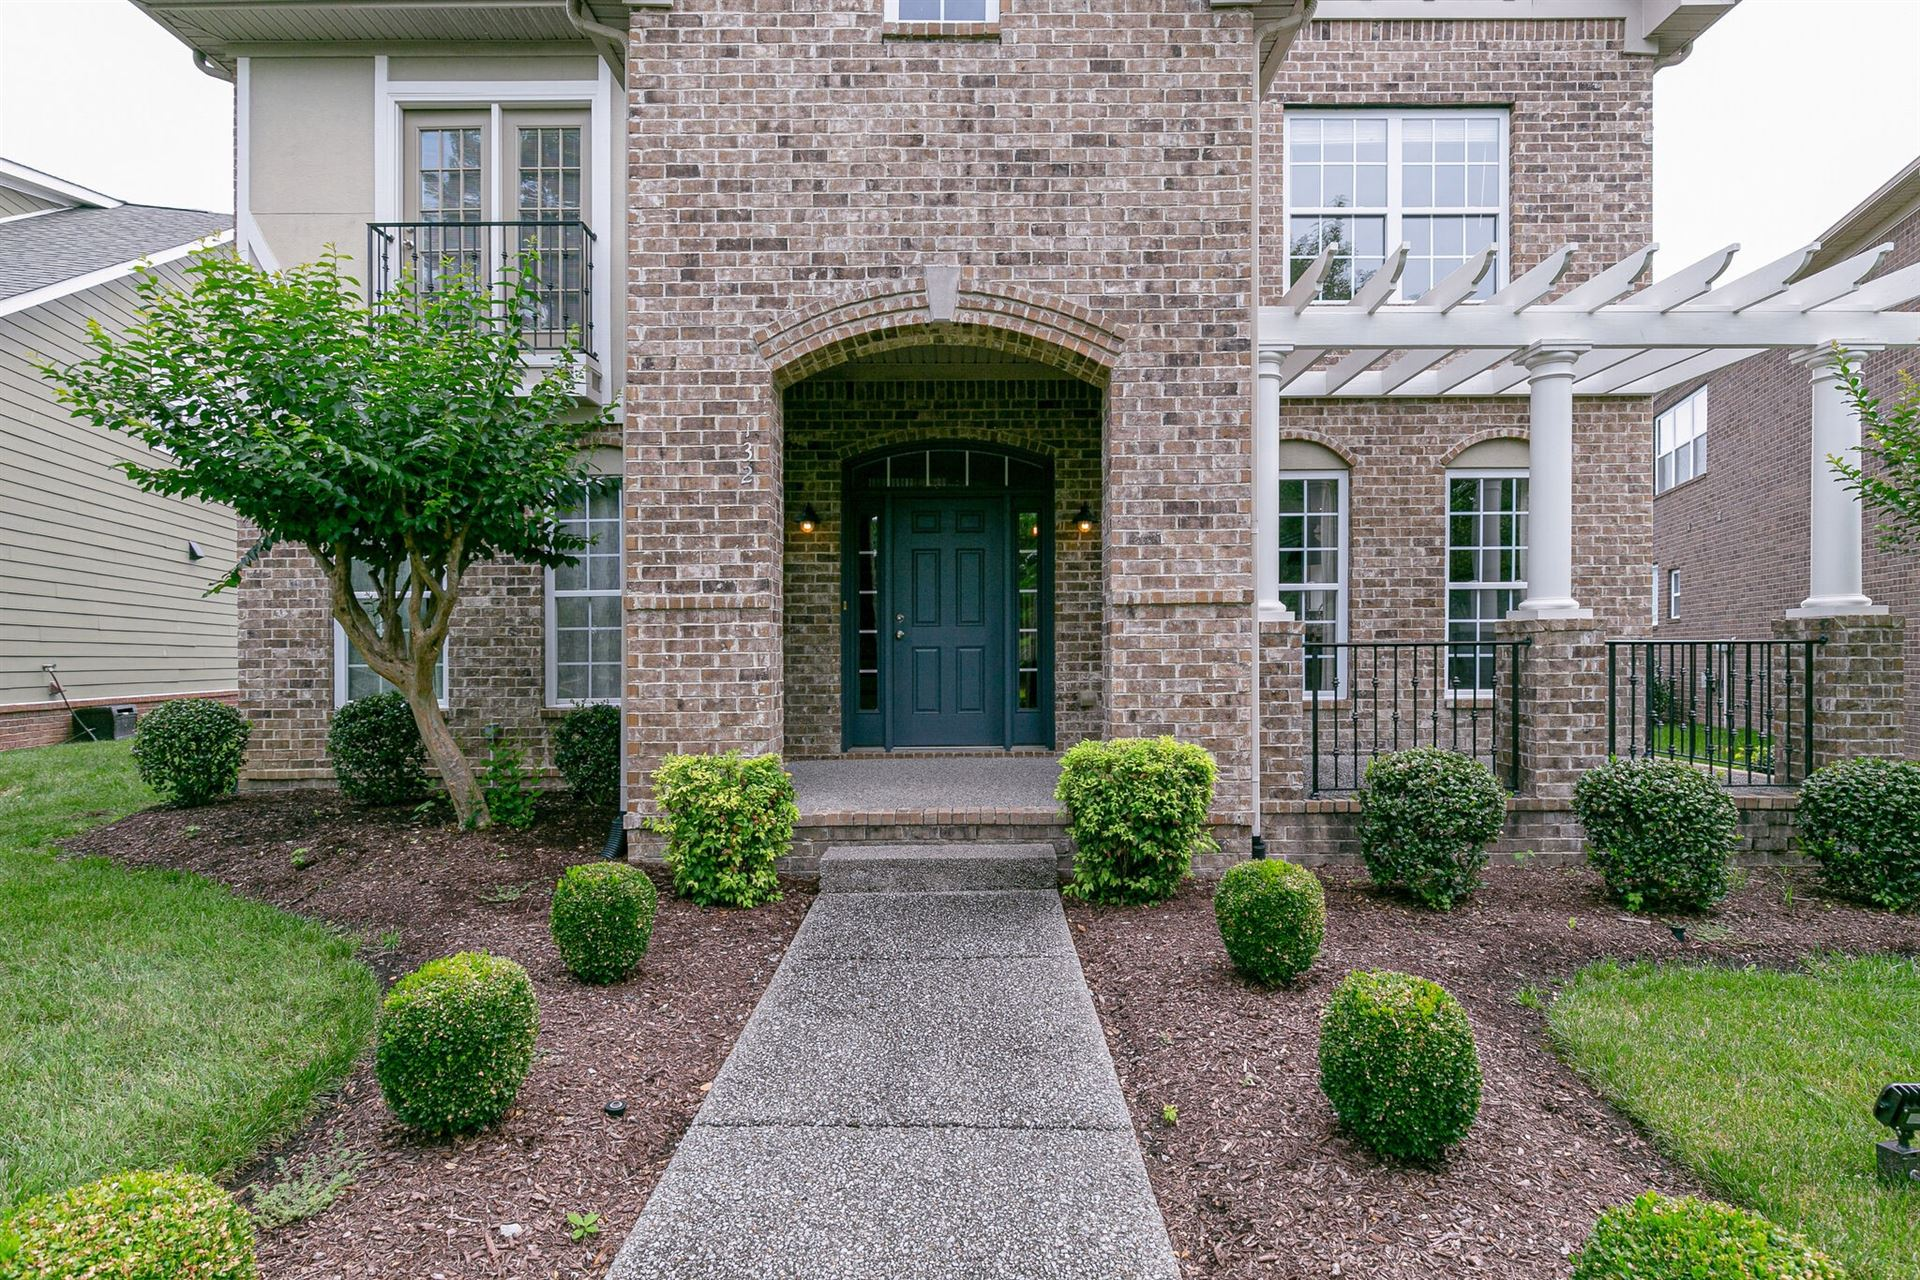 Photo of 132 Delta Blvd, Franklin, TN 37067 (MLS # 2159160)